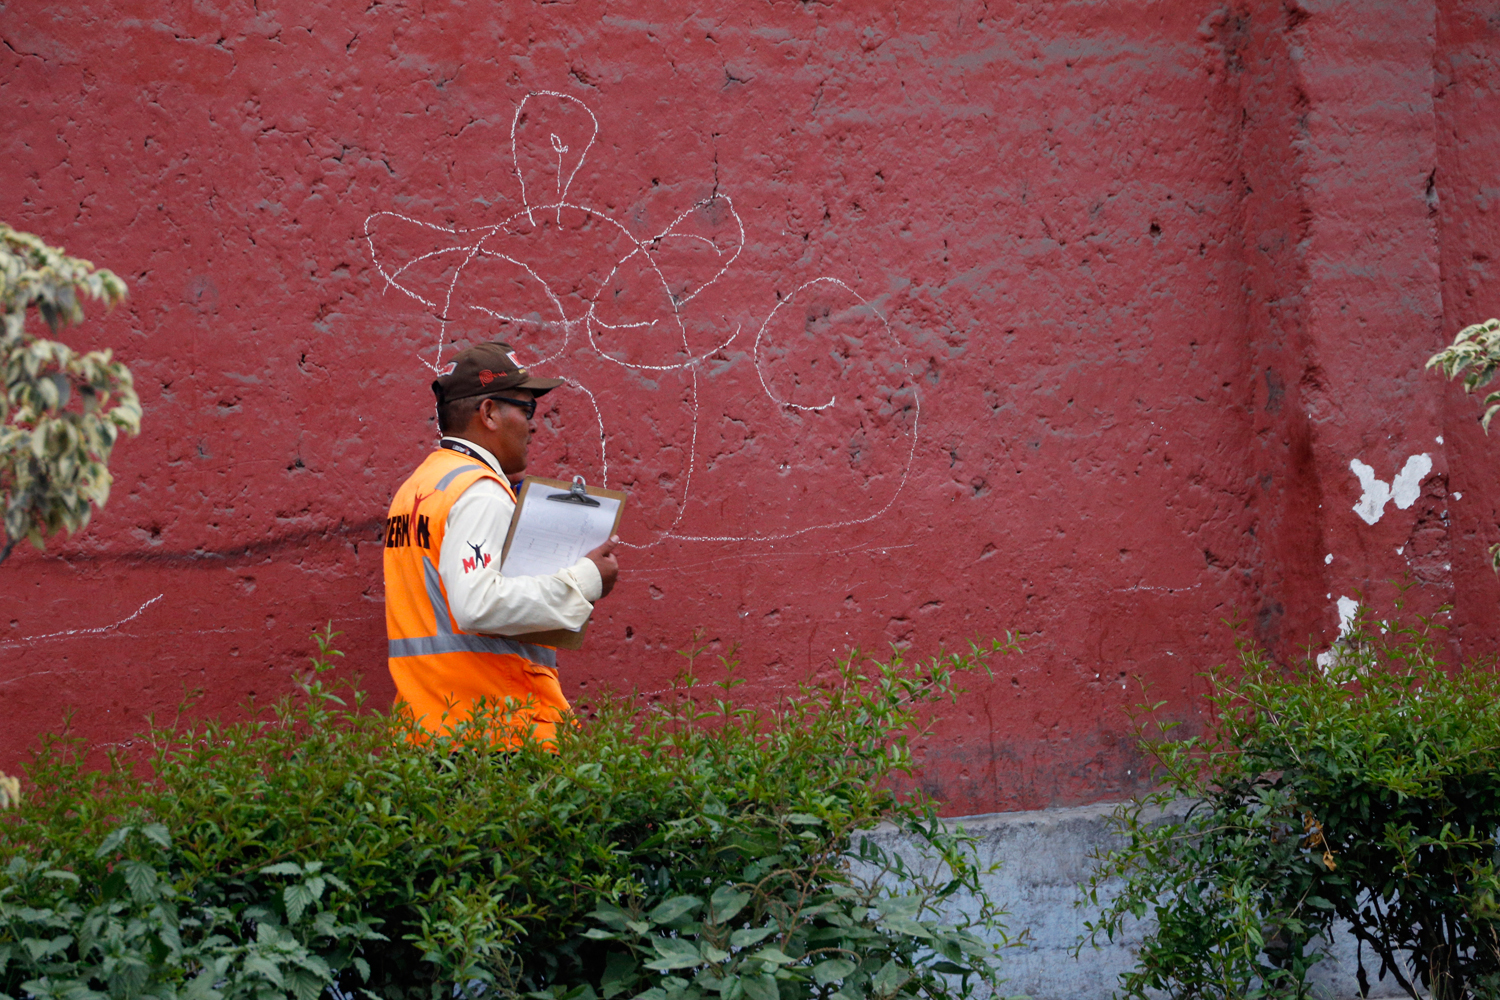 A public servant wearing an orange reflective vest and carrying a clipboard with a blank sheet is walking past a red wall that features a large, clumsy graffiti roughly resembling a face.